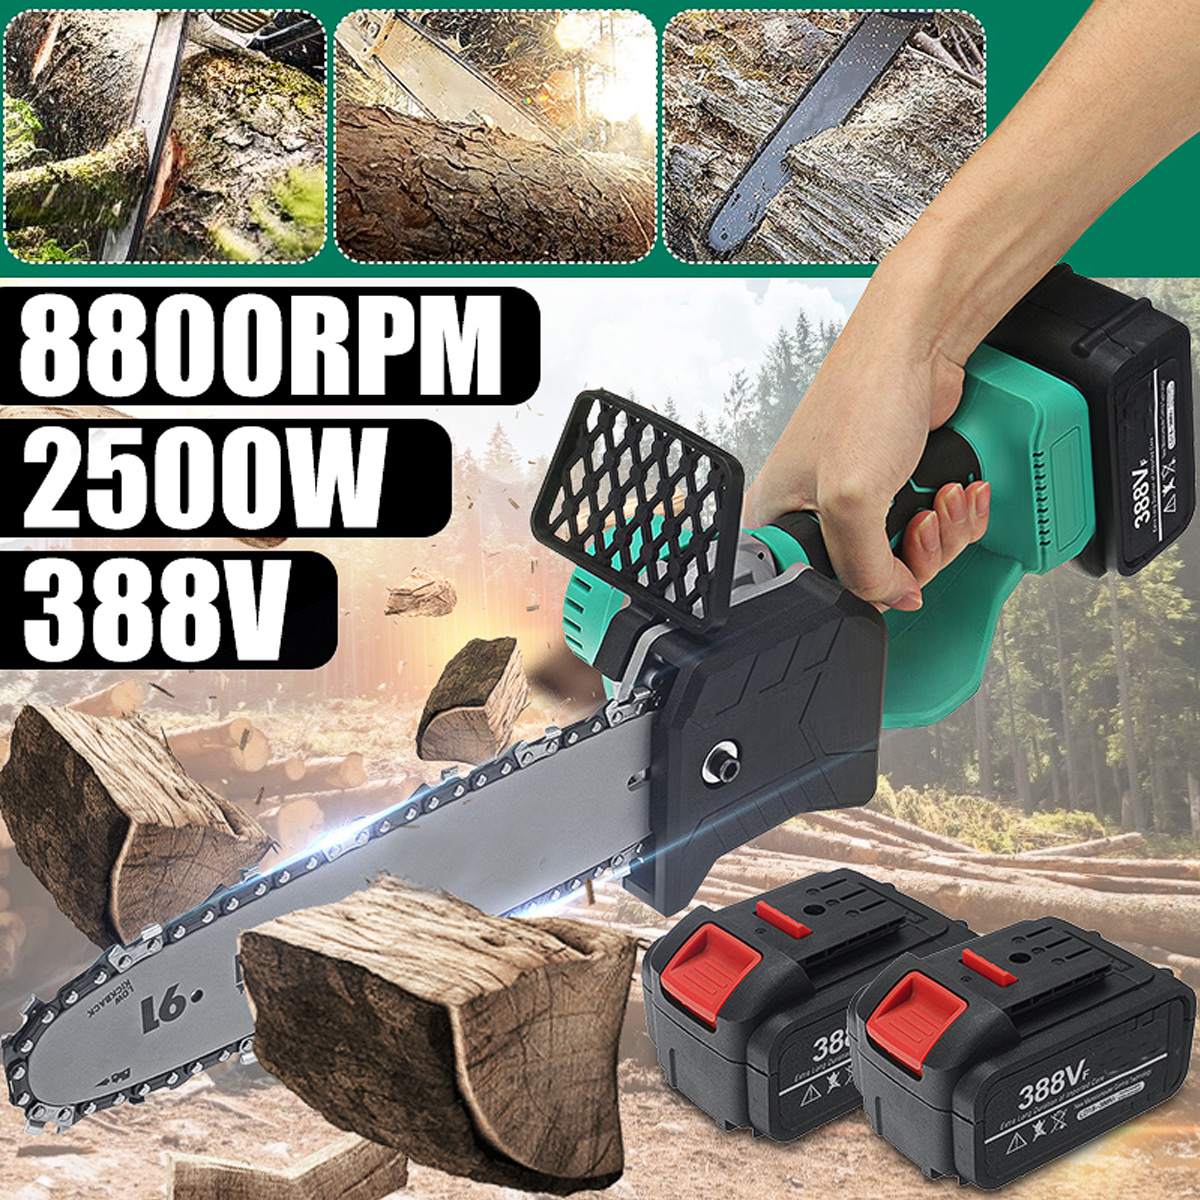 388VF 10 inch 2500W Electric Chainsaw Cordless Chain Saw Woodworking Tree Branch Cutter Garden Power Tool